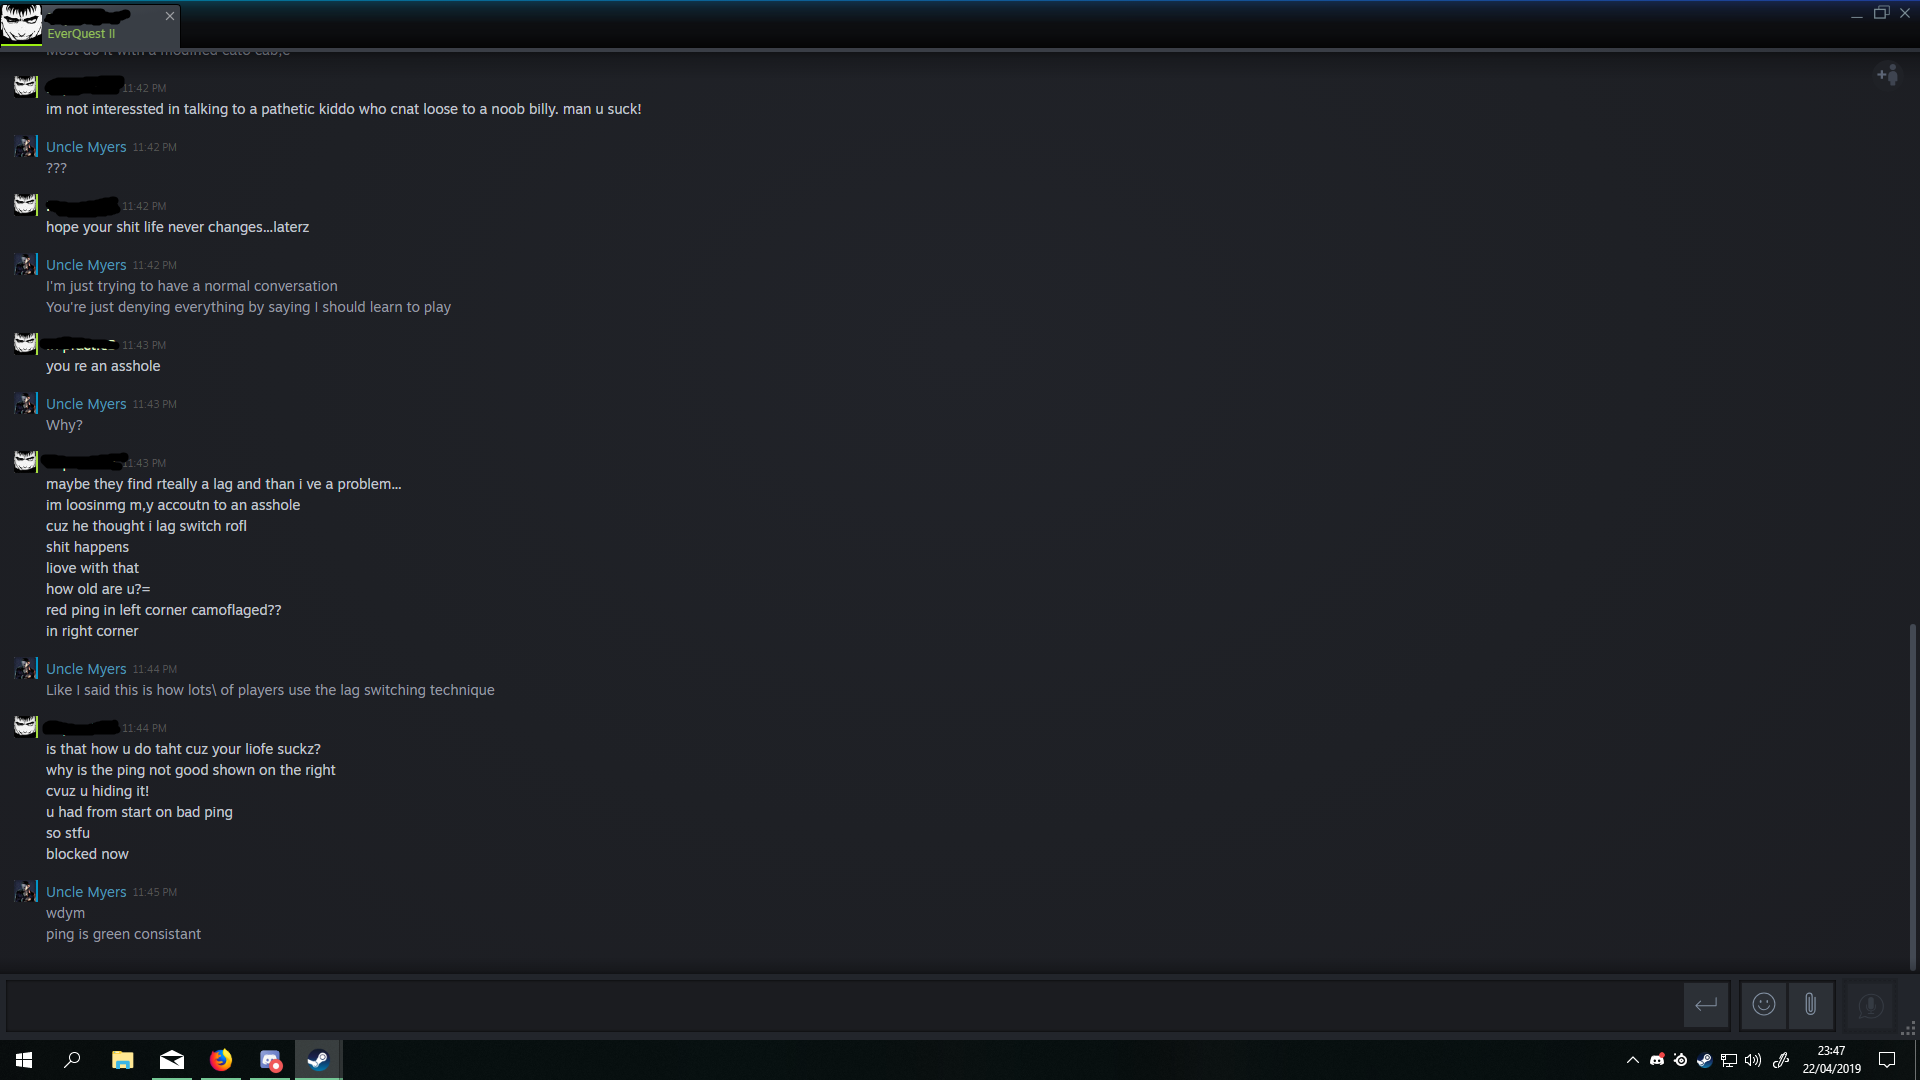 Added player I reported on steam and asked him if he got